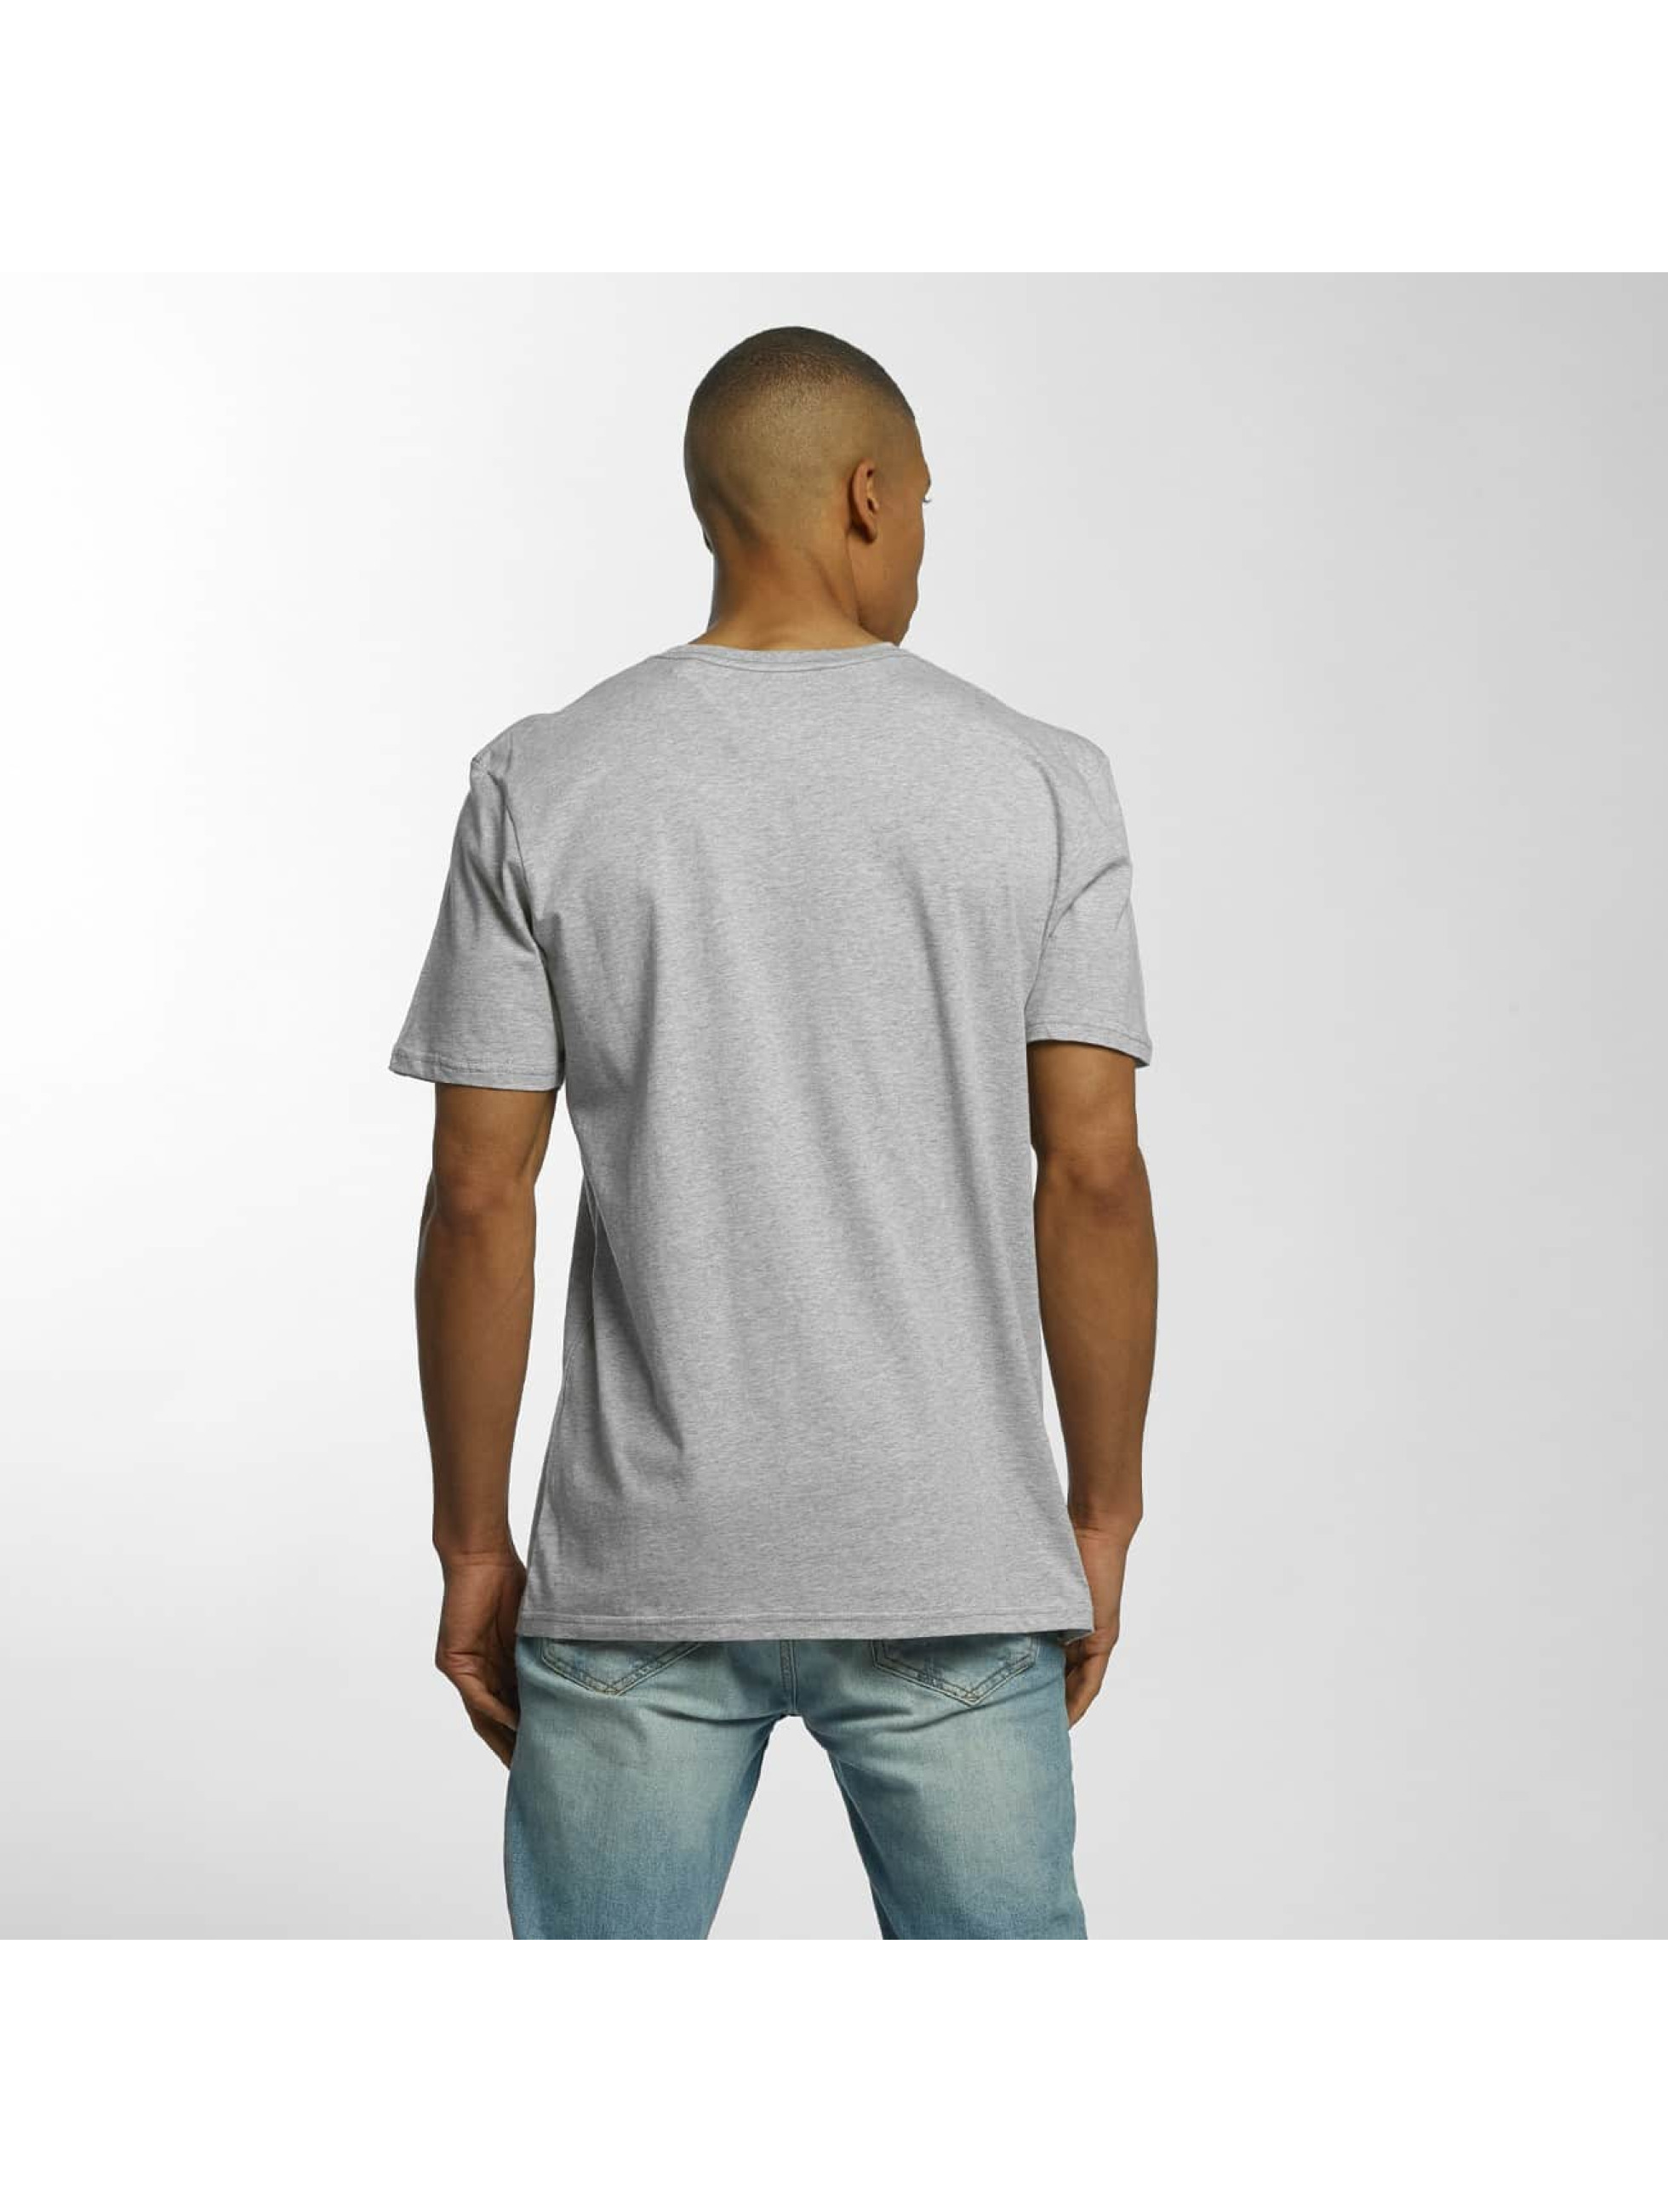 Quiksilver T-shirt Classic Daily Surf grigio